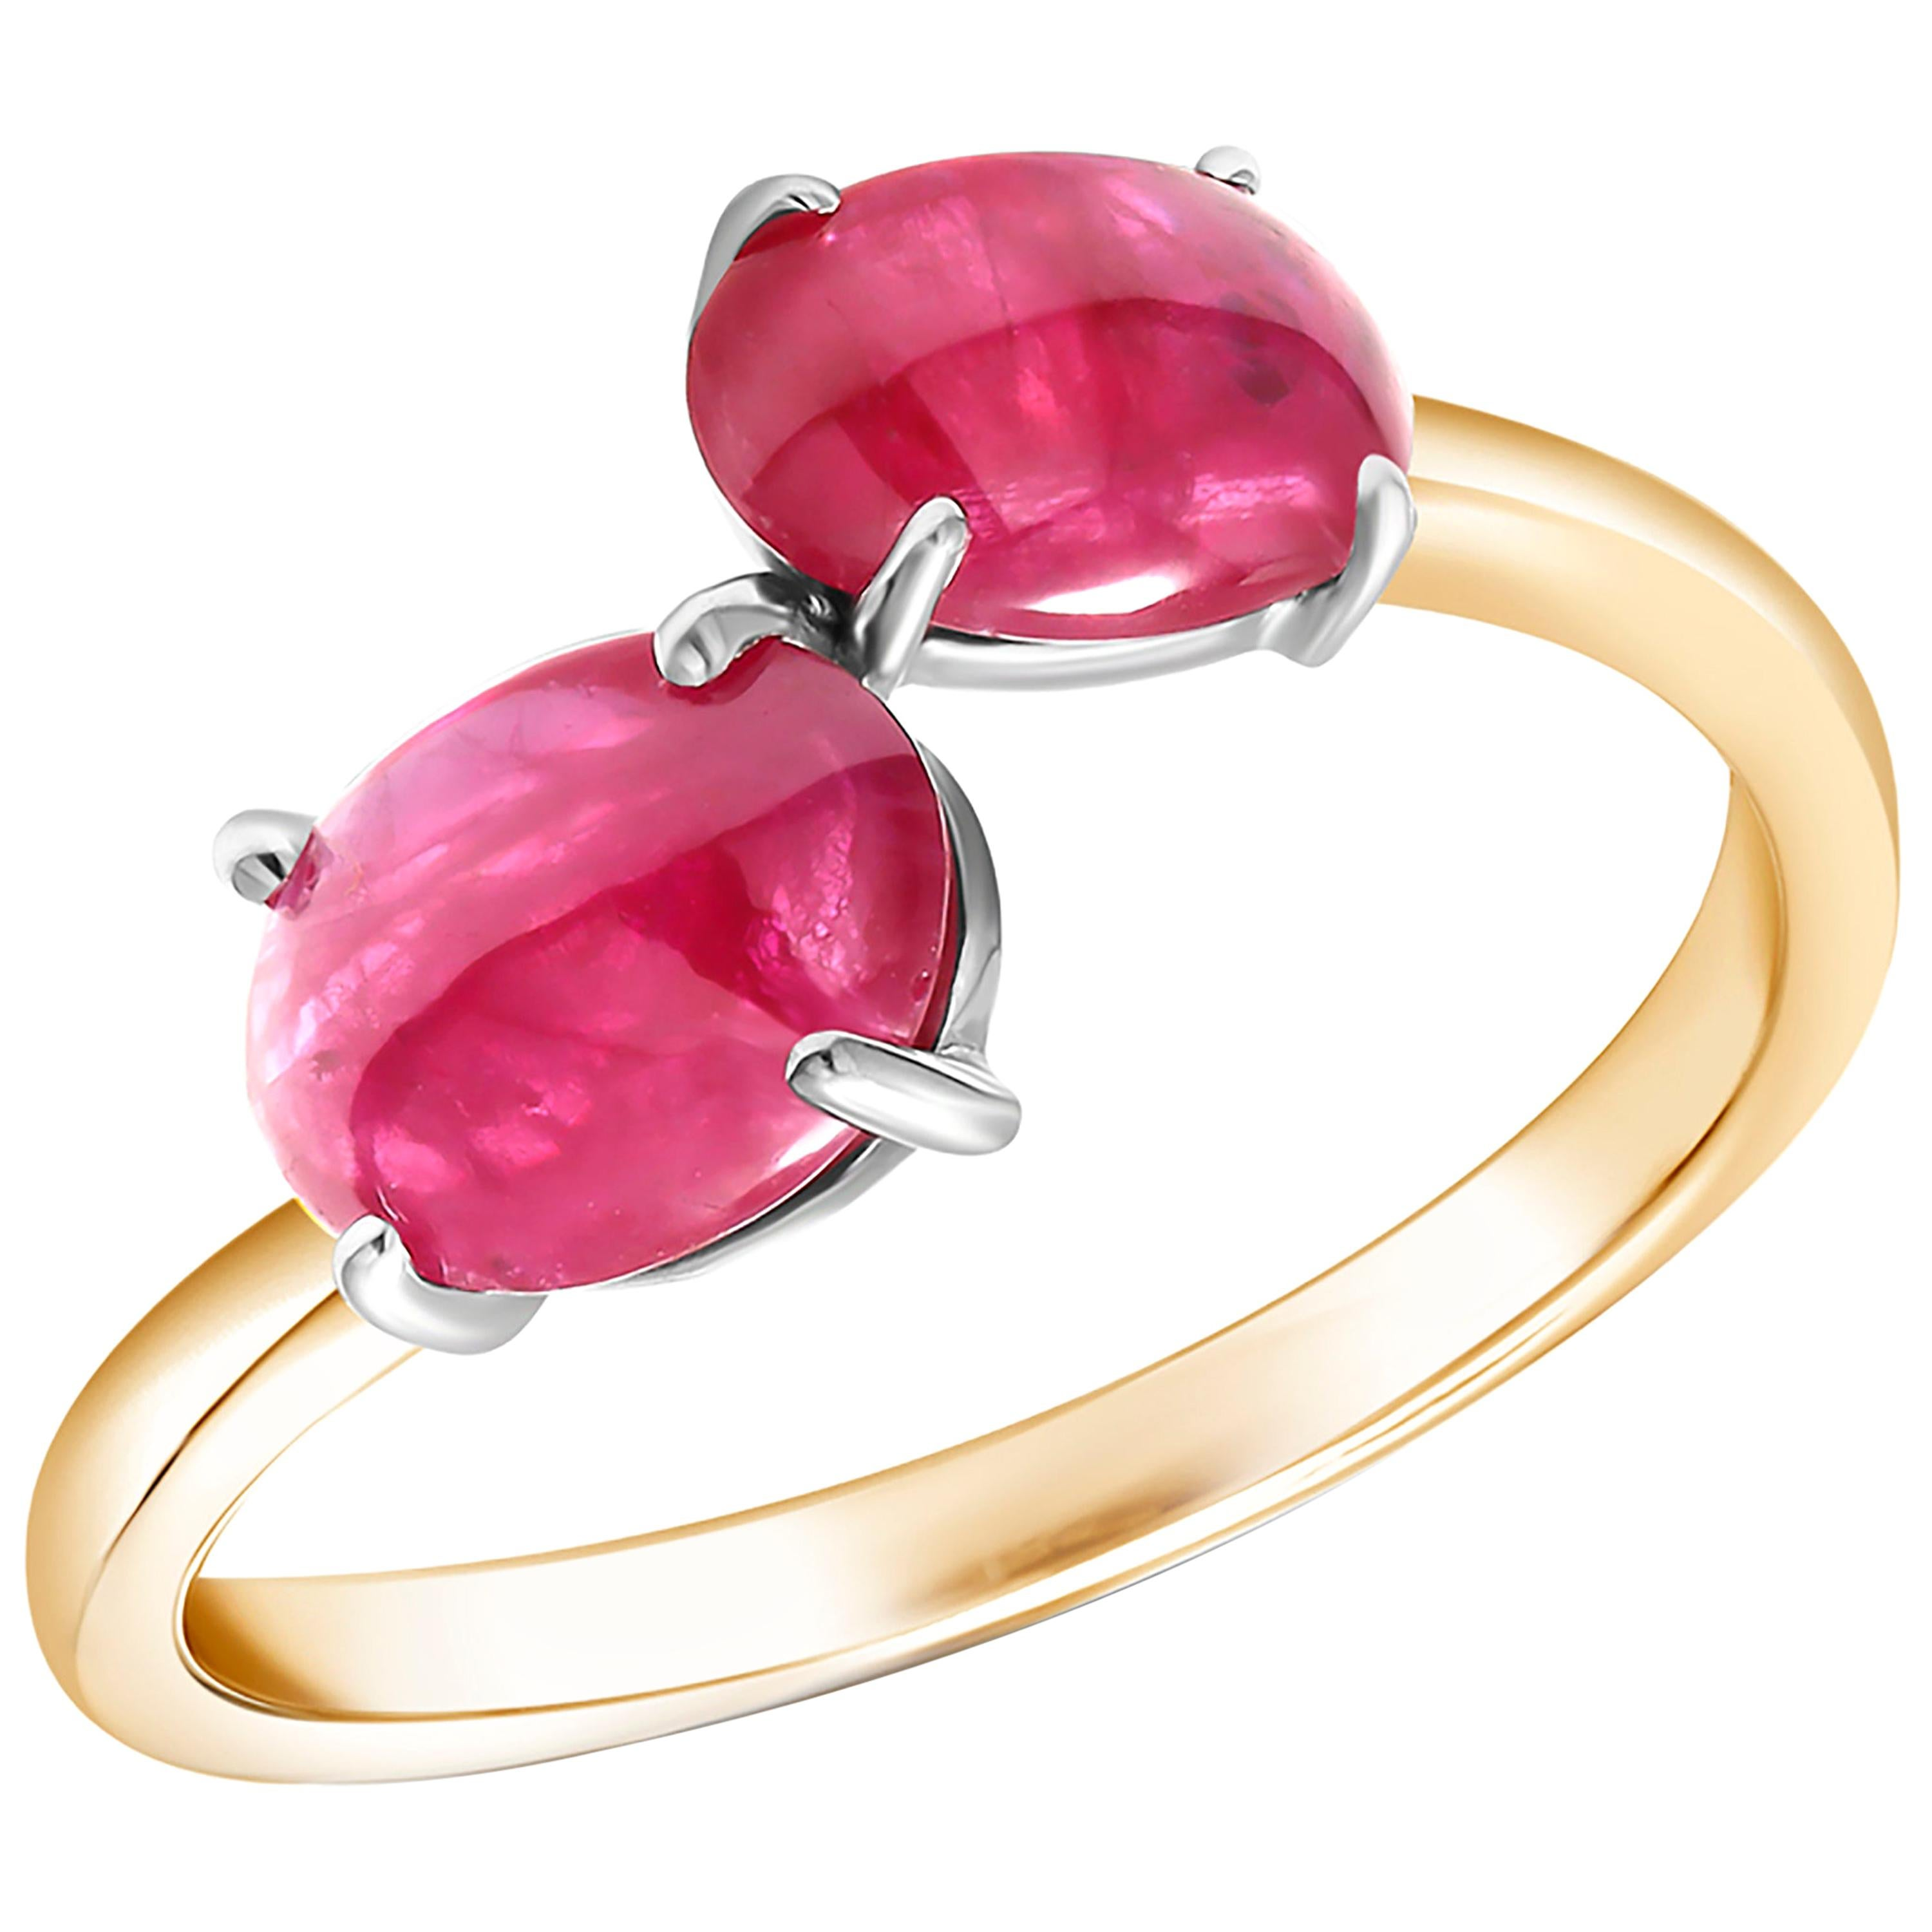 Two Cabochon Burma Rubies Facing Gold Cocktail Ring Weighing 3.90 Carats